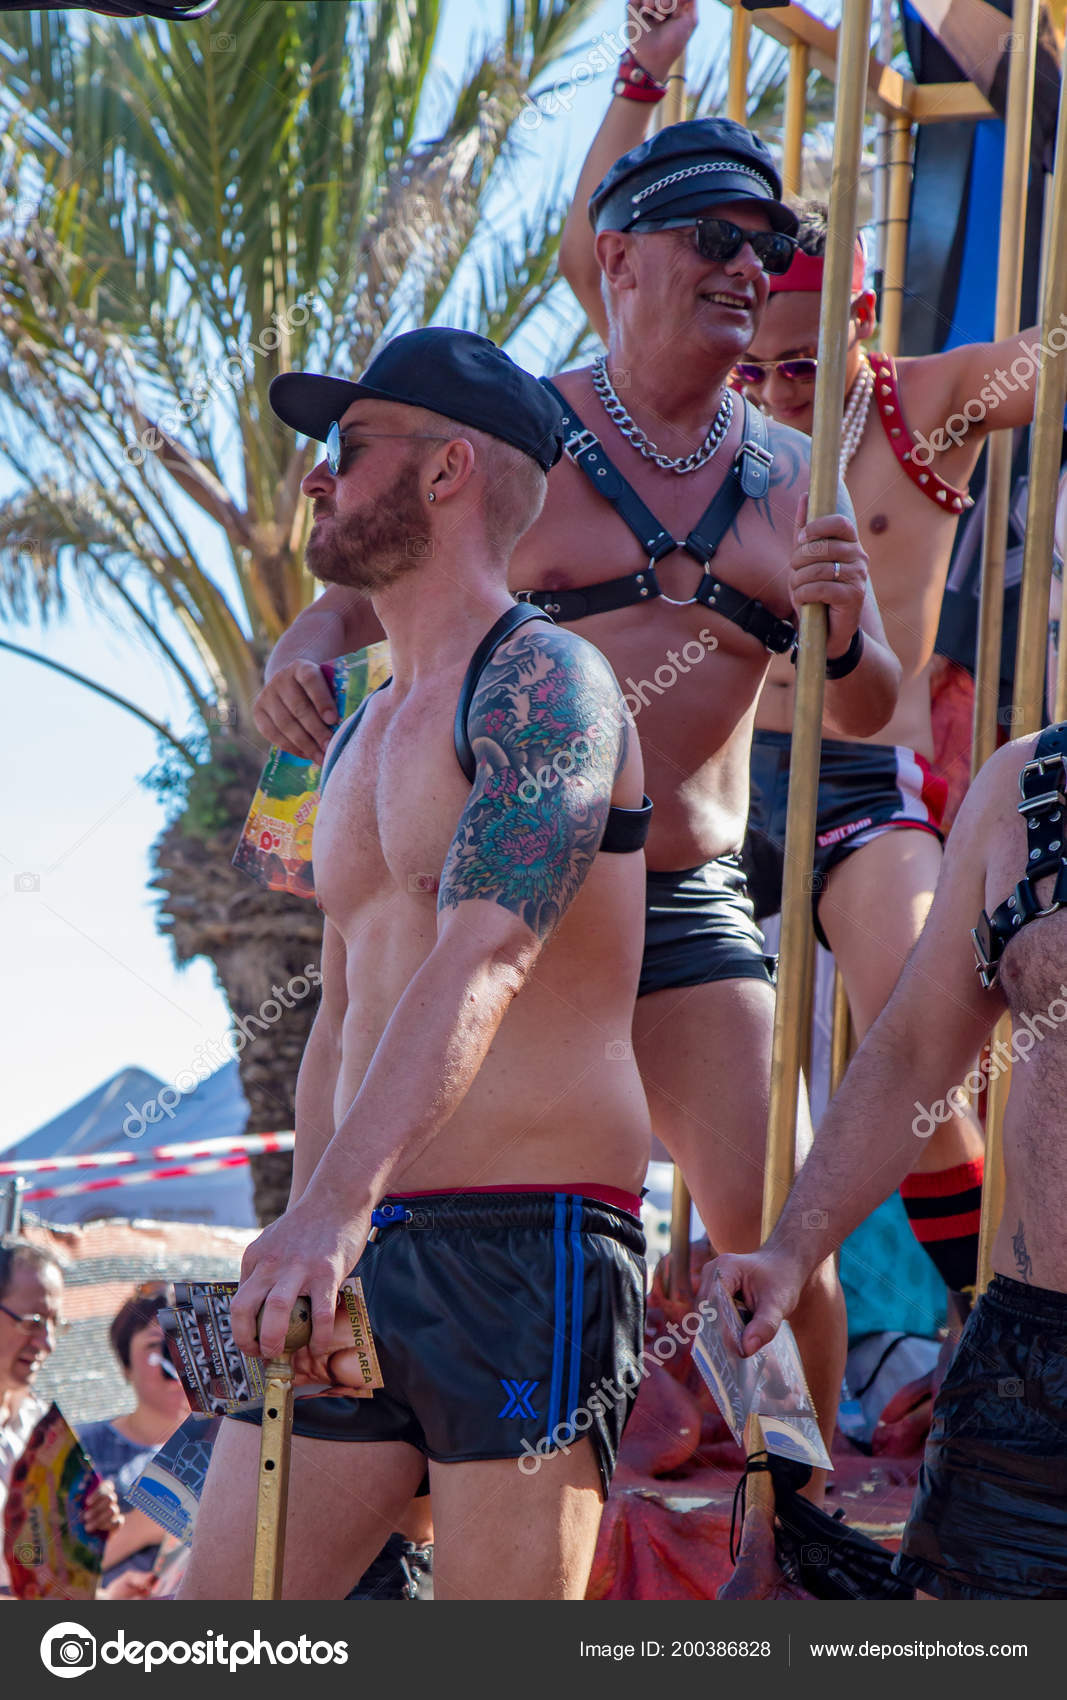 Opinion bisexual crusing sites